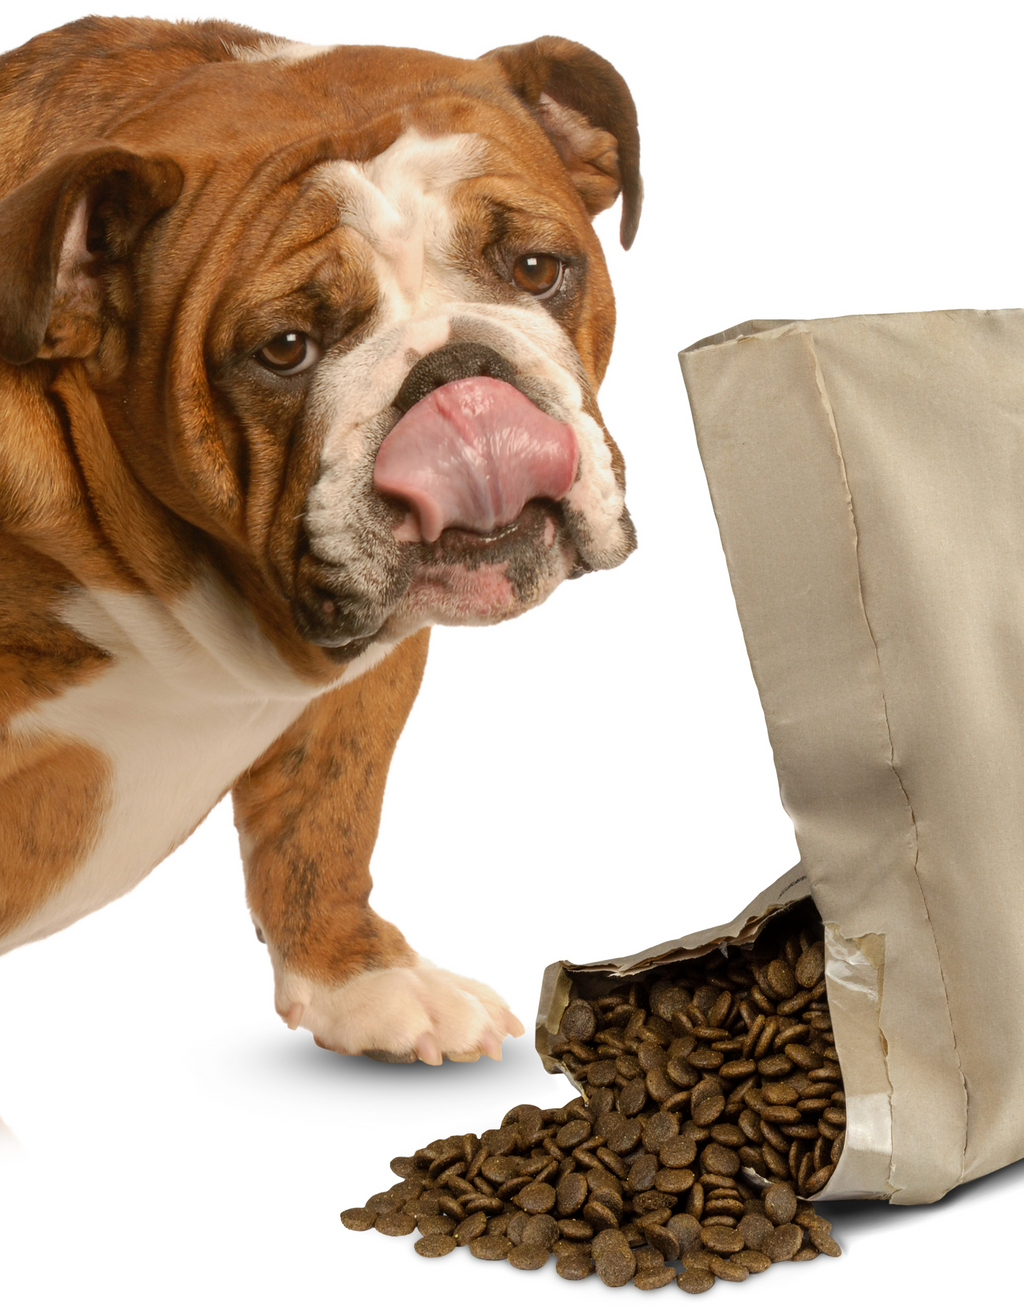 An English Bulldog standing beside an open bag of Aromatic Chicken and Veg Dog Food. The bag is open slightly with the dog food spilling out and the Bulldog licking its nose. Complete Grain-Free Dry Dog Food 95% Chicken and Veg plus 5% Added Goodness... for Pet Parent Peace of Mind